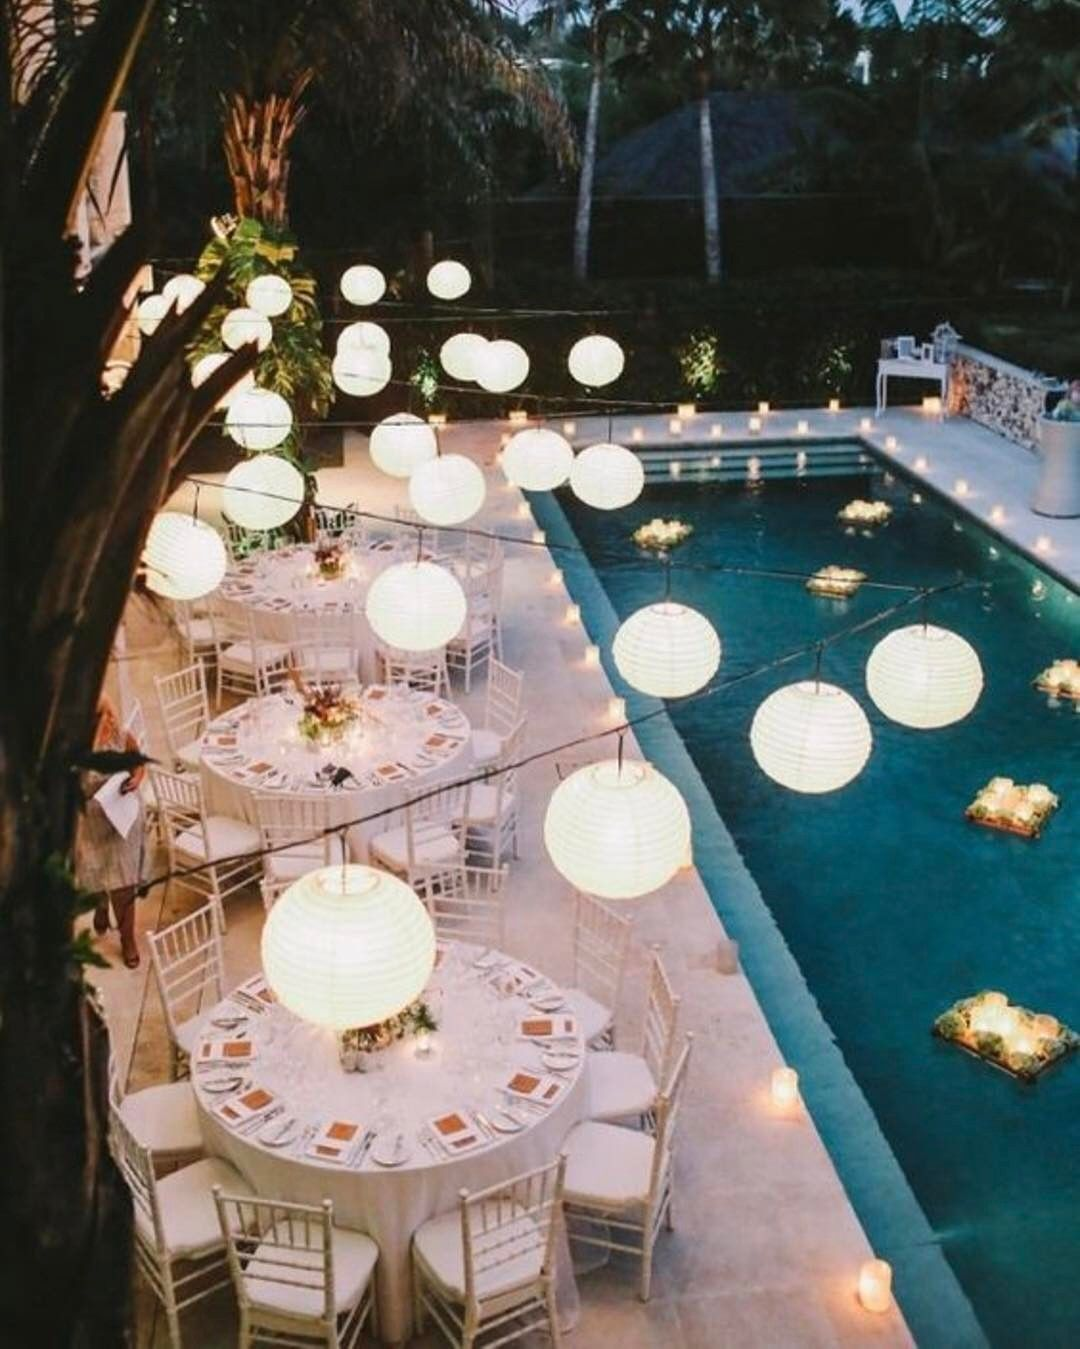 Ideas For Outdoor Wedding Reception Tables: Dinner, Hanging Lights, Pool